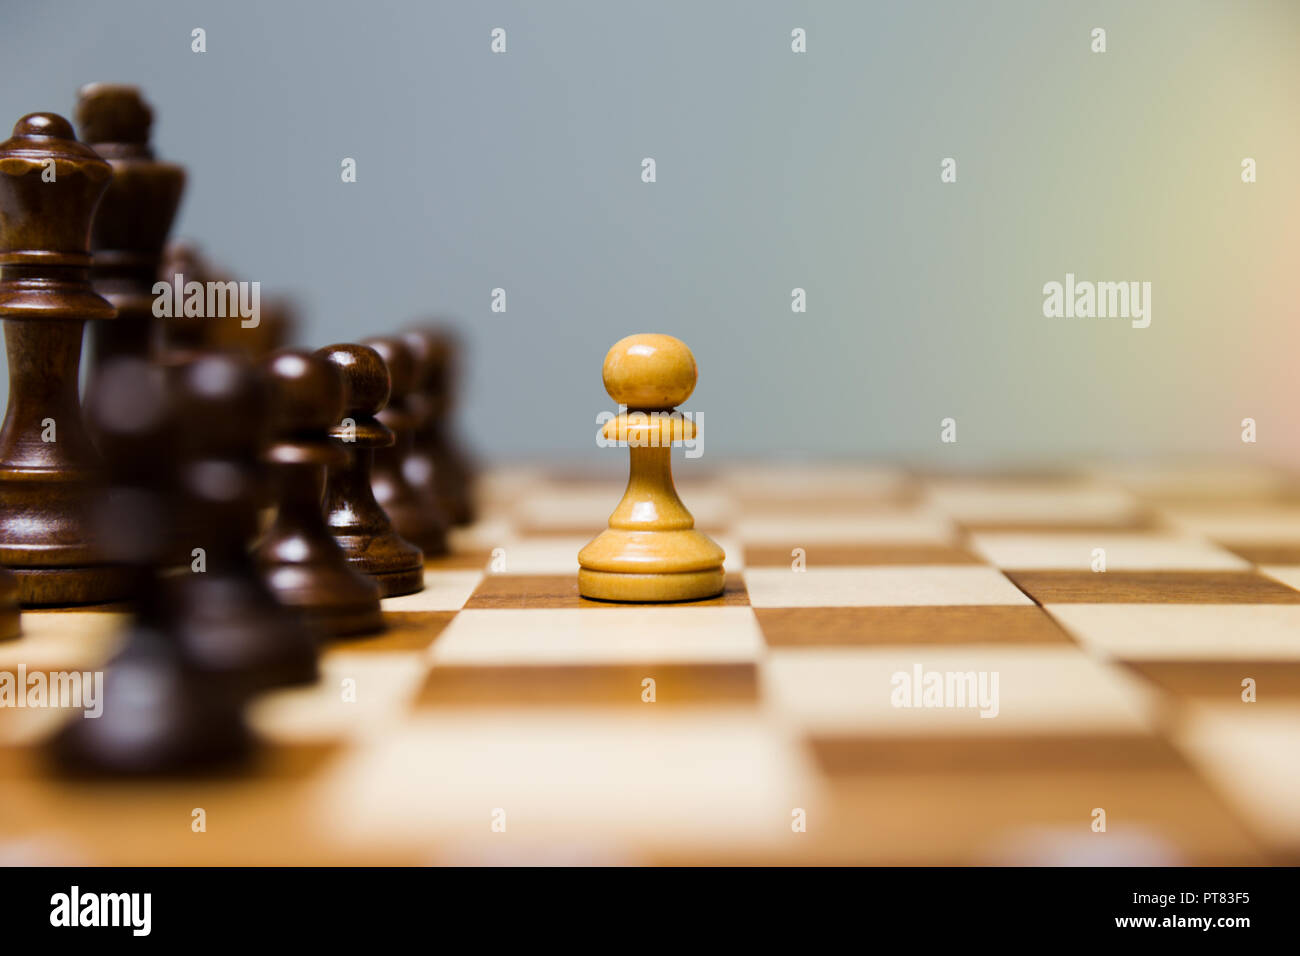 Pawn standing in front of aligned dark chess figures. Courage and leadership concept. - Stock Image